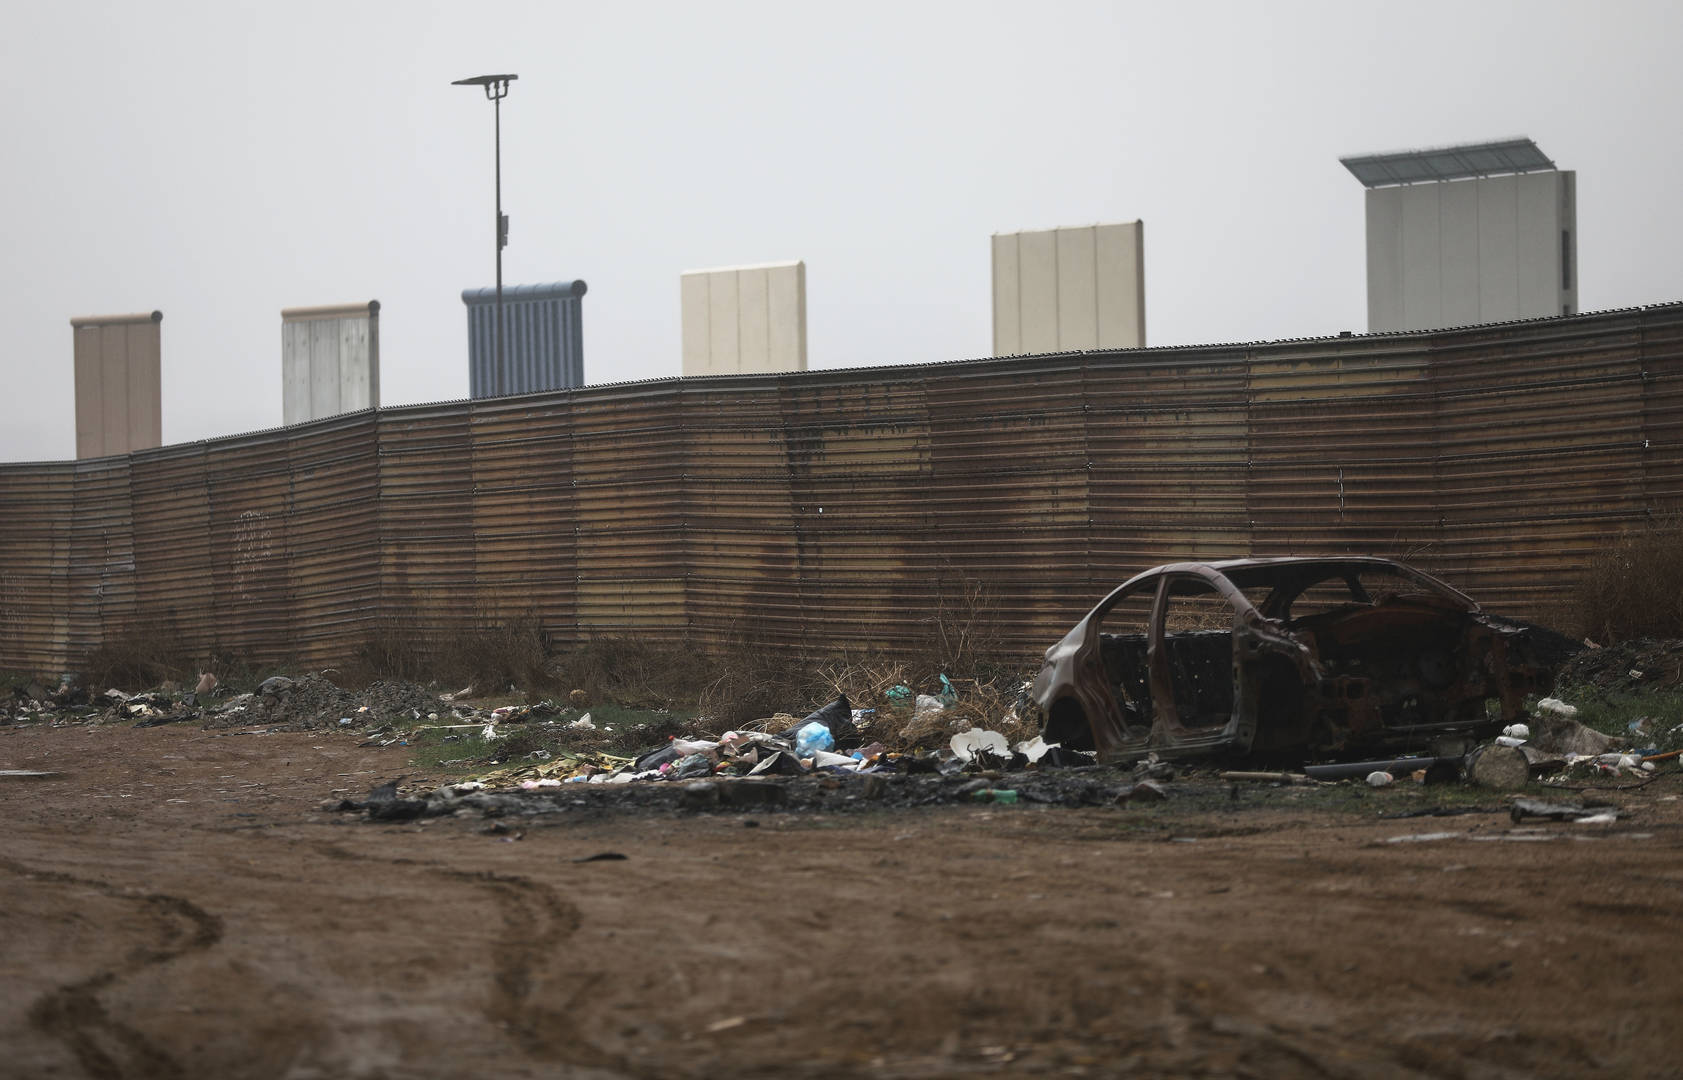 Donald Trump's Border Wall To Be Built After Pentagon Authorizes $1 Billion Price Tag